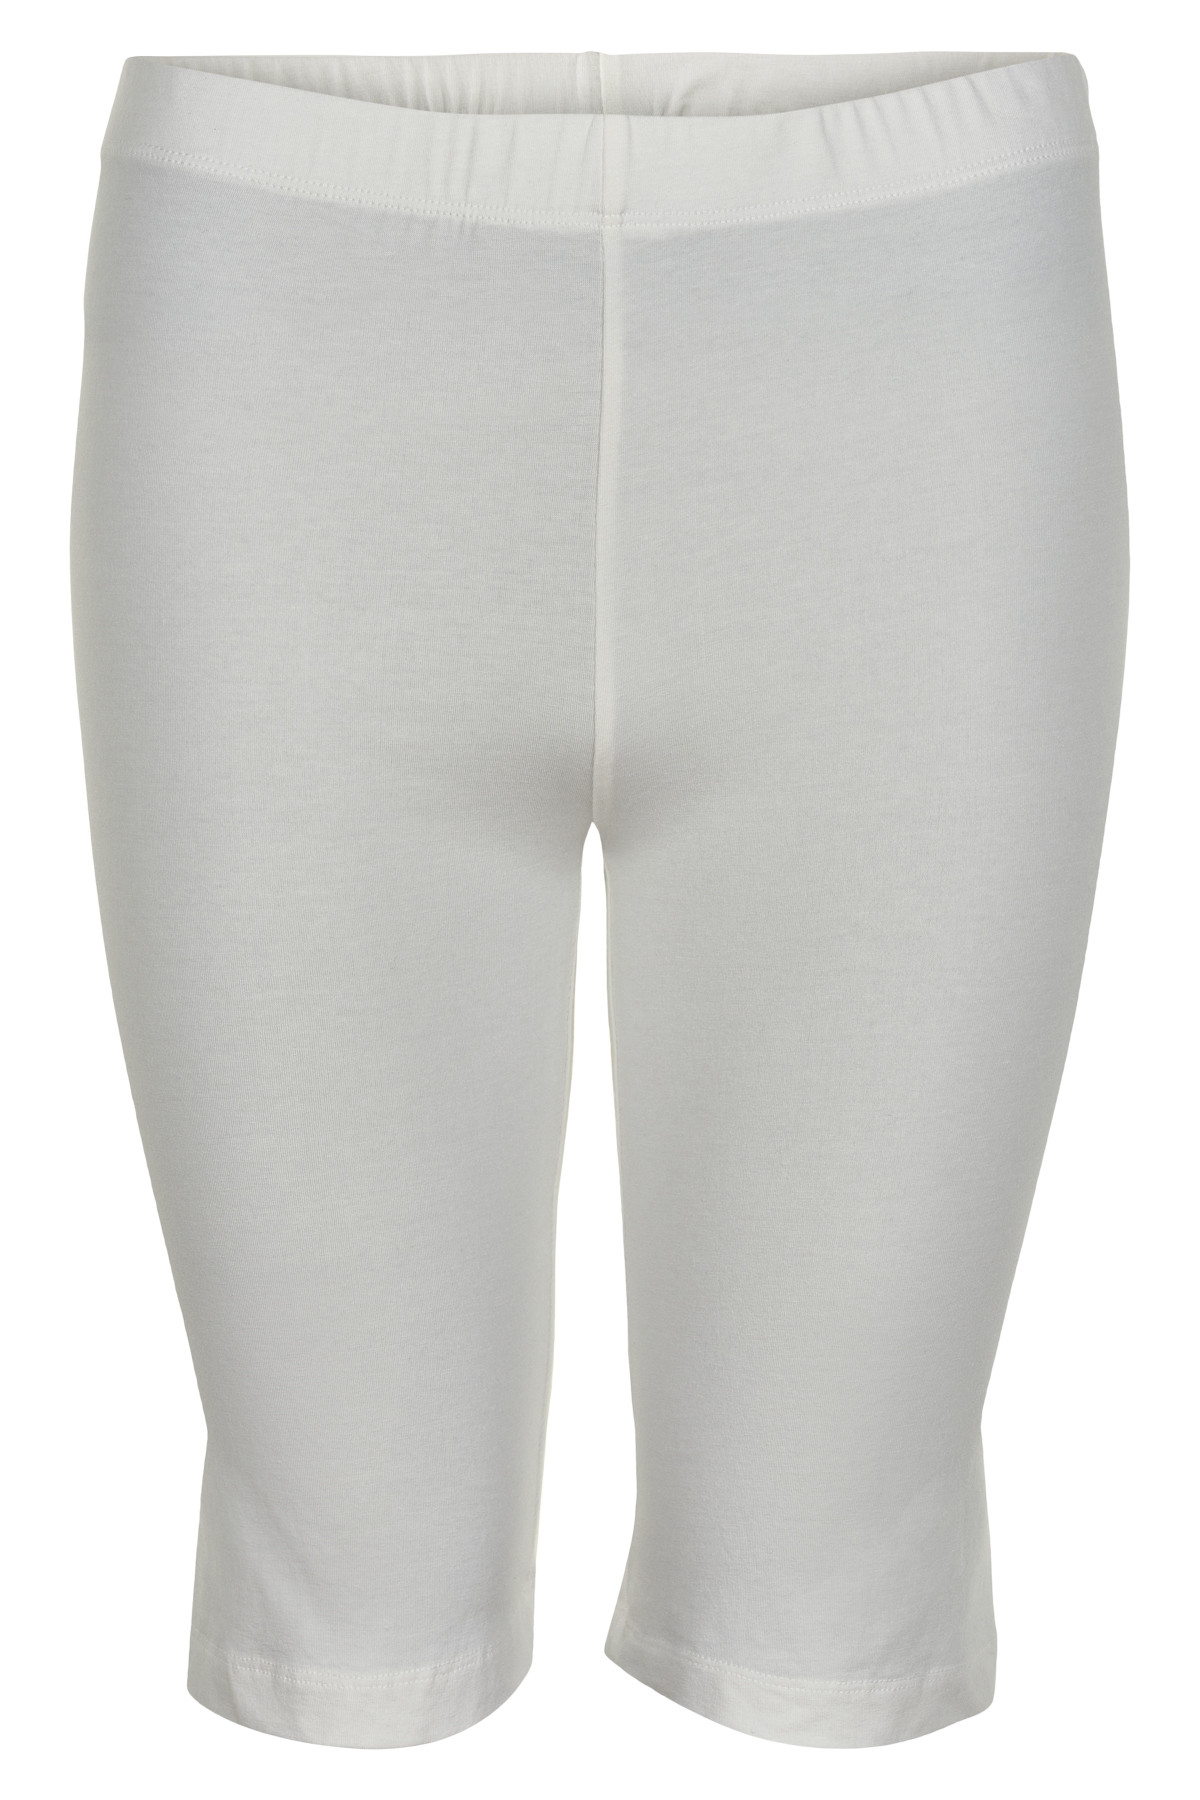 NOA NOA SHORT LEGGINGS 1-9435-2 00505 (Beige, XXS)